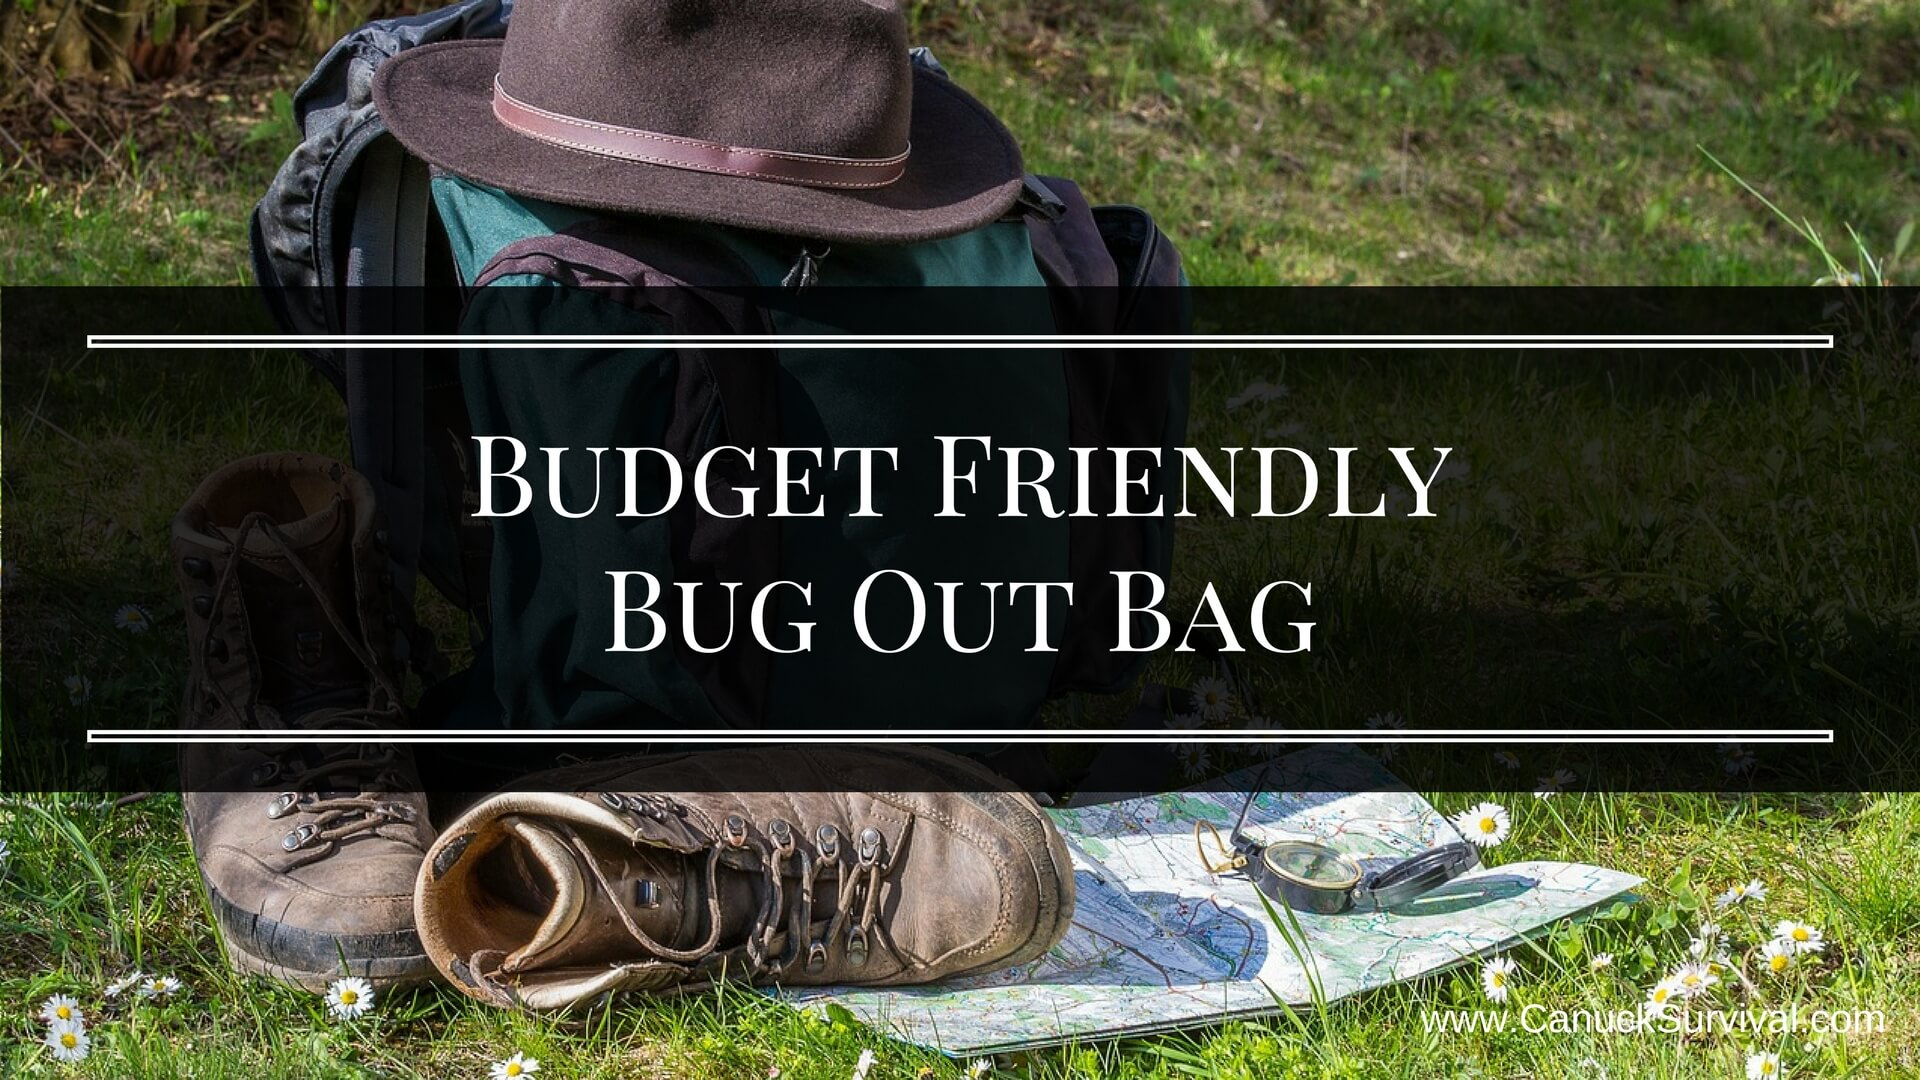 Budget Friendly Bug Out Bag